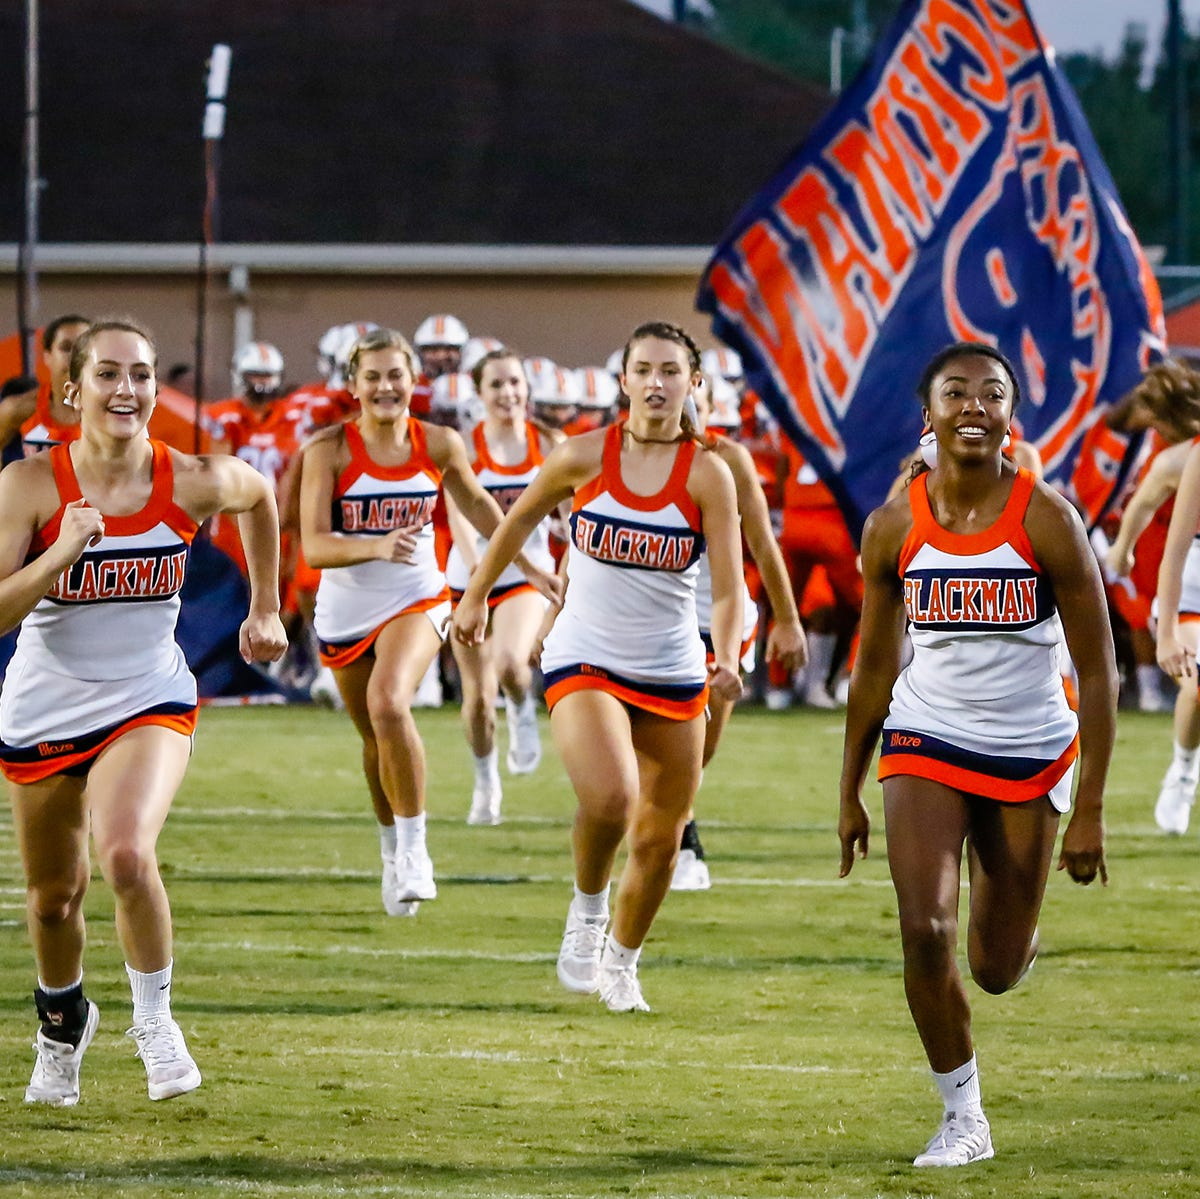 Blackman cheerleaders lead the pack prior to Friday's game vs. Siegel.